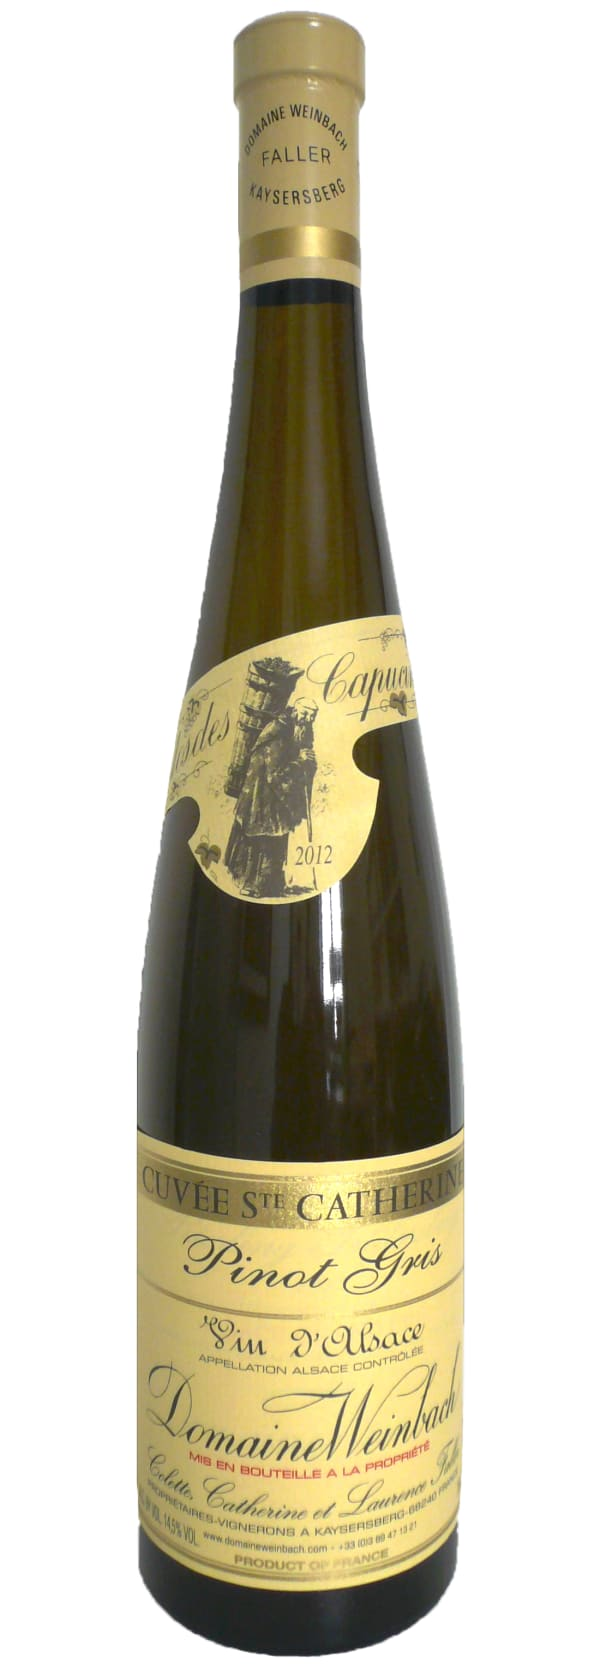 Domaine Weinbach Cuvée Ste Catherine Pinot Gris 2013